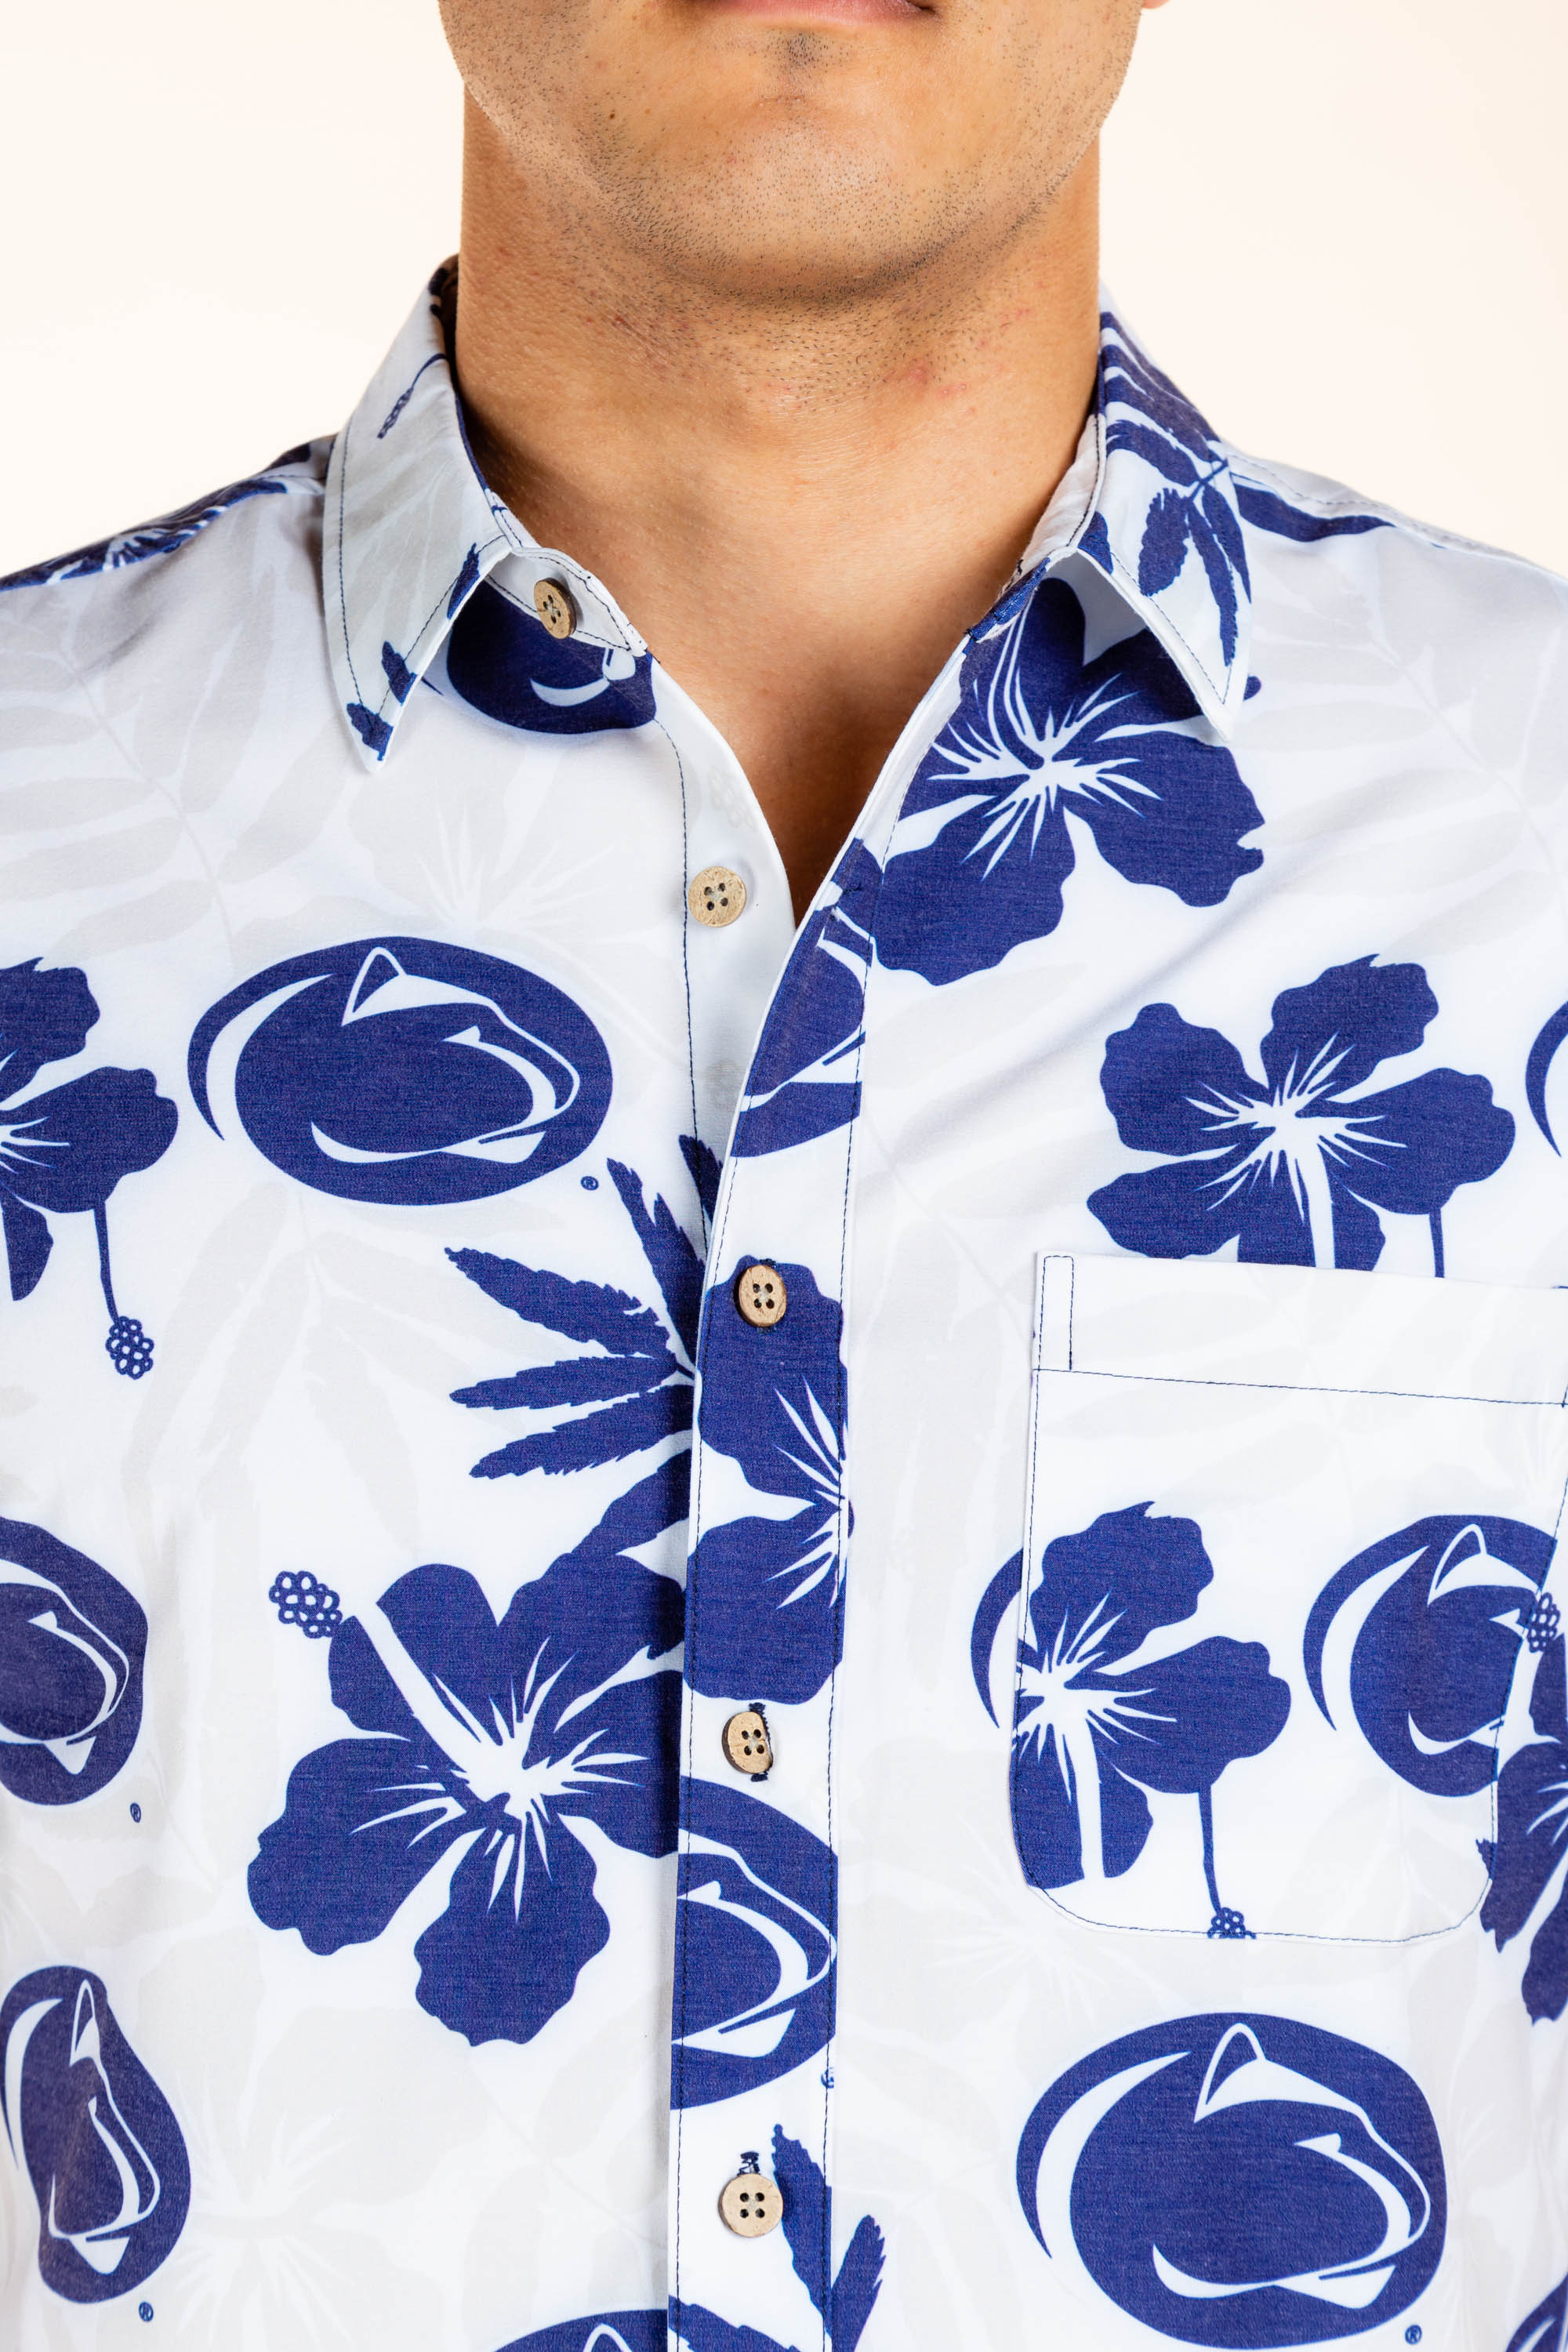 Men's Penn State Hawaiian shirt